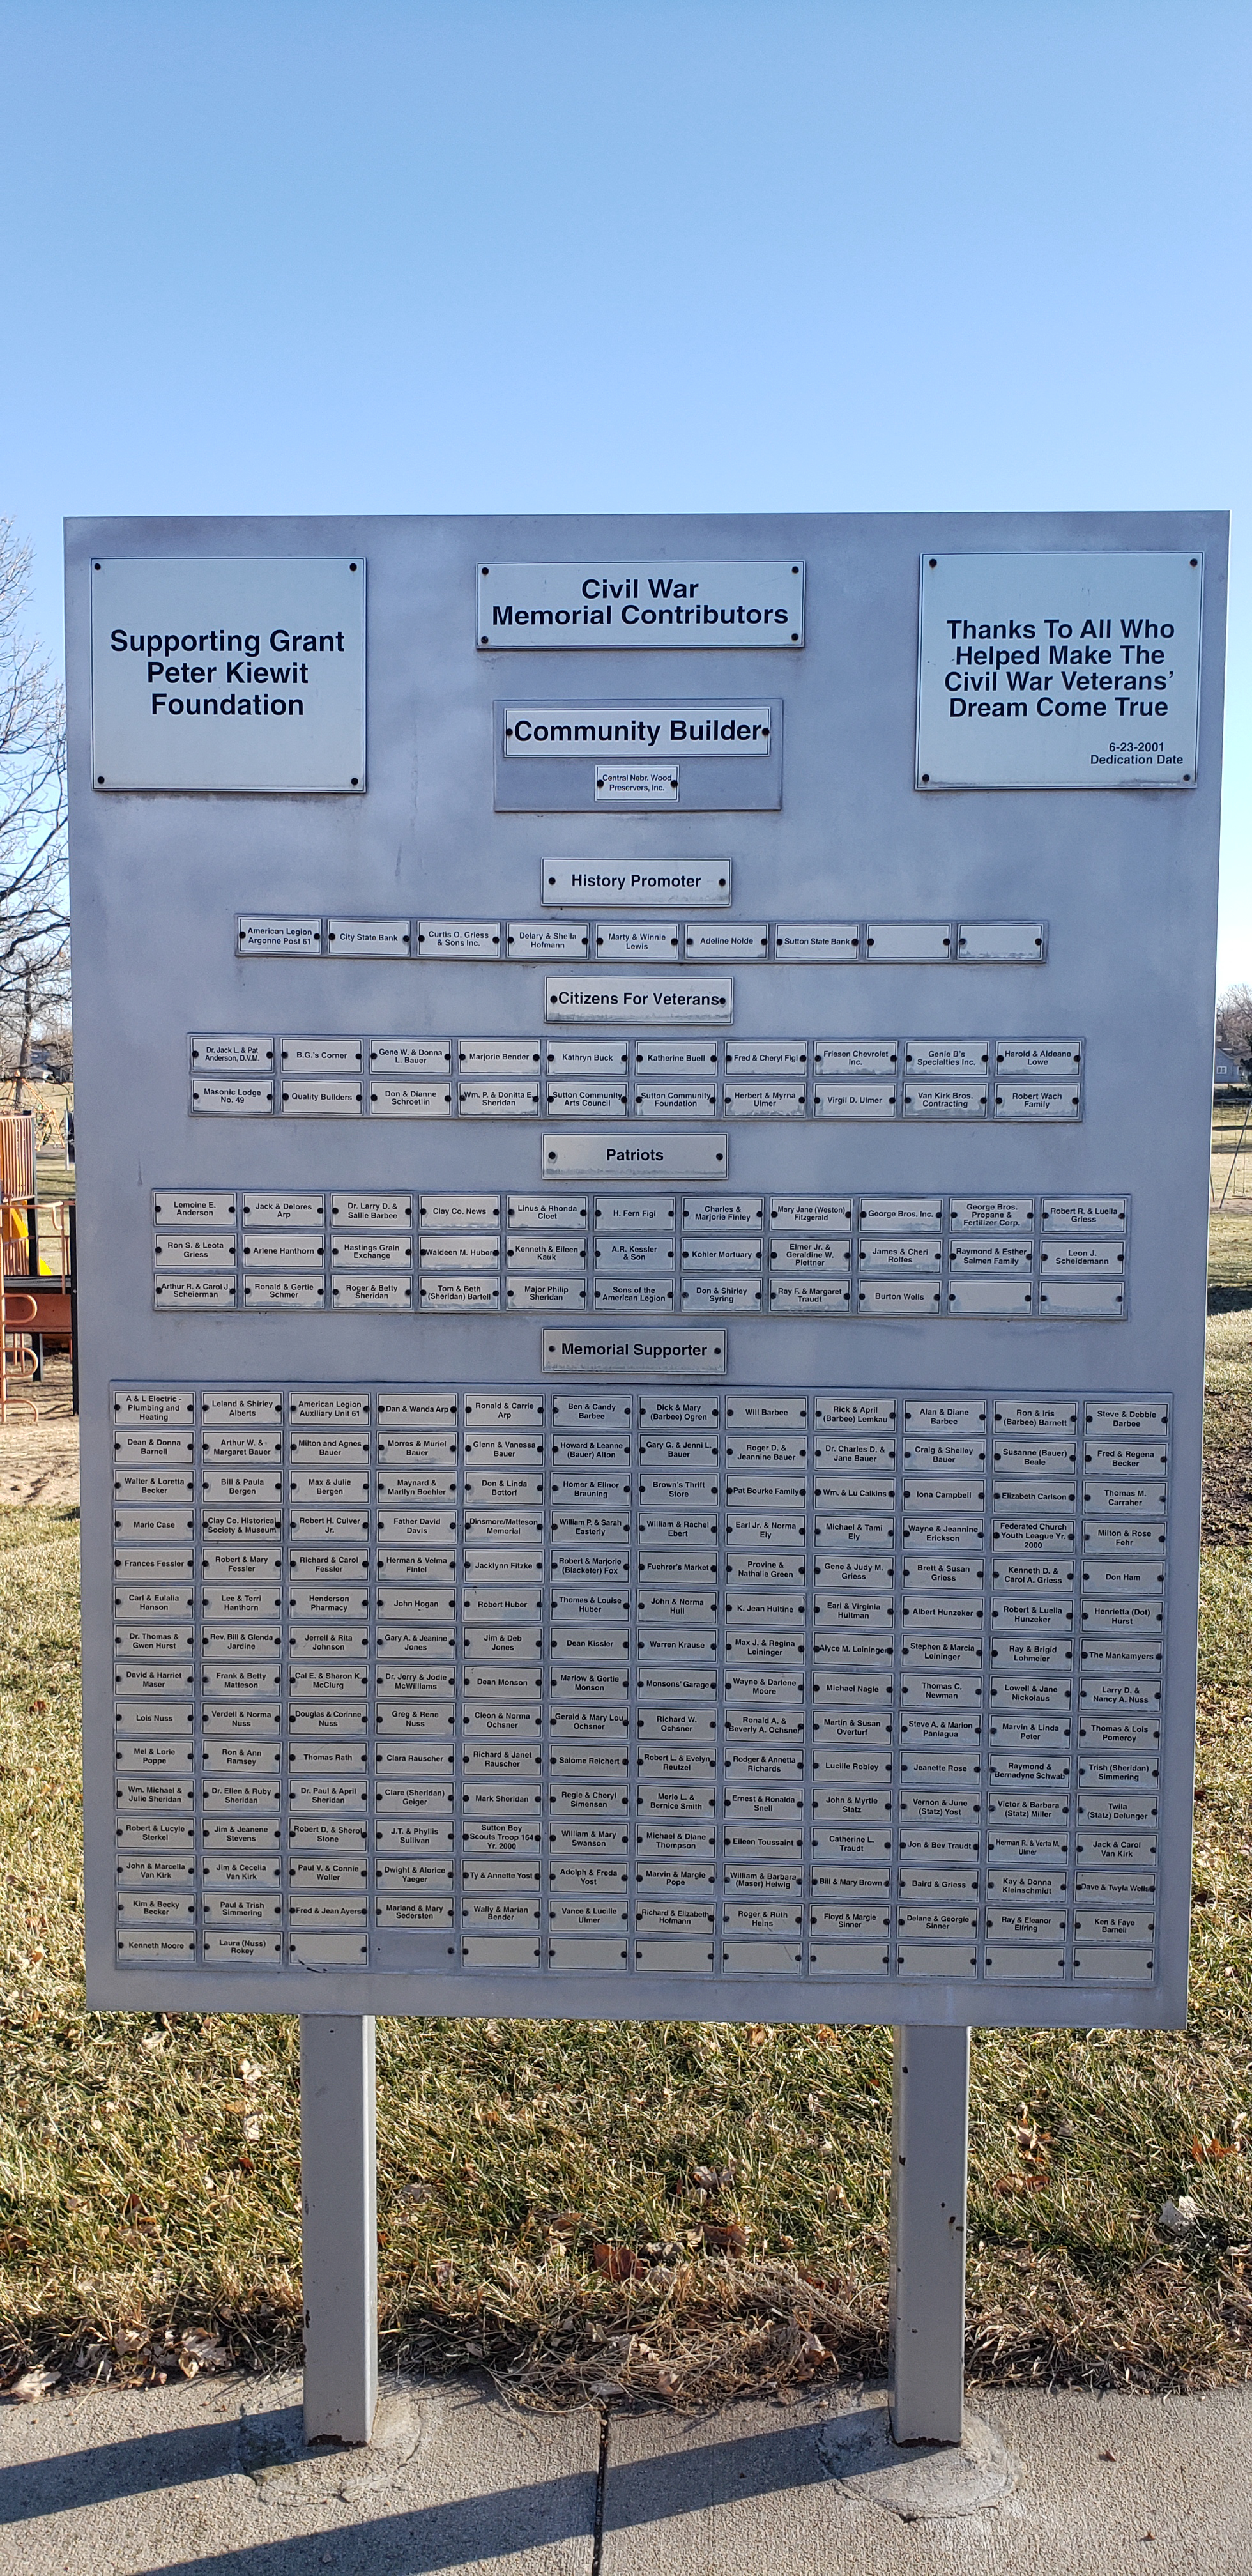 Showing the names and Organizations that helped to finish the site